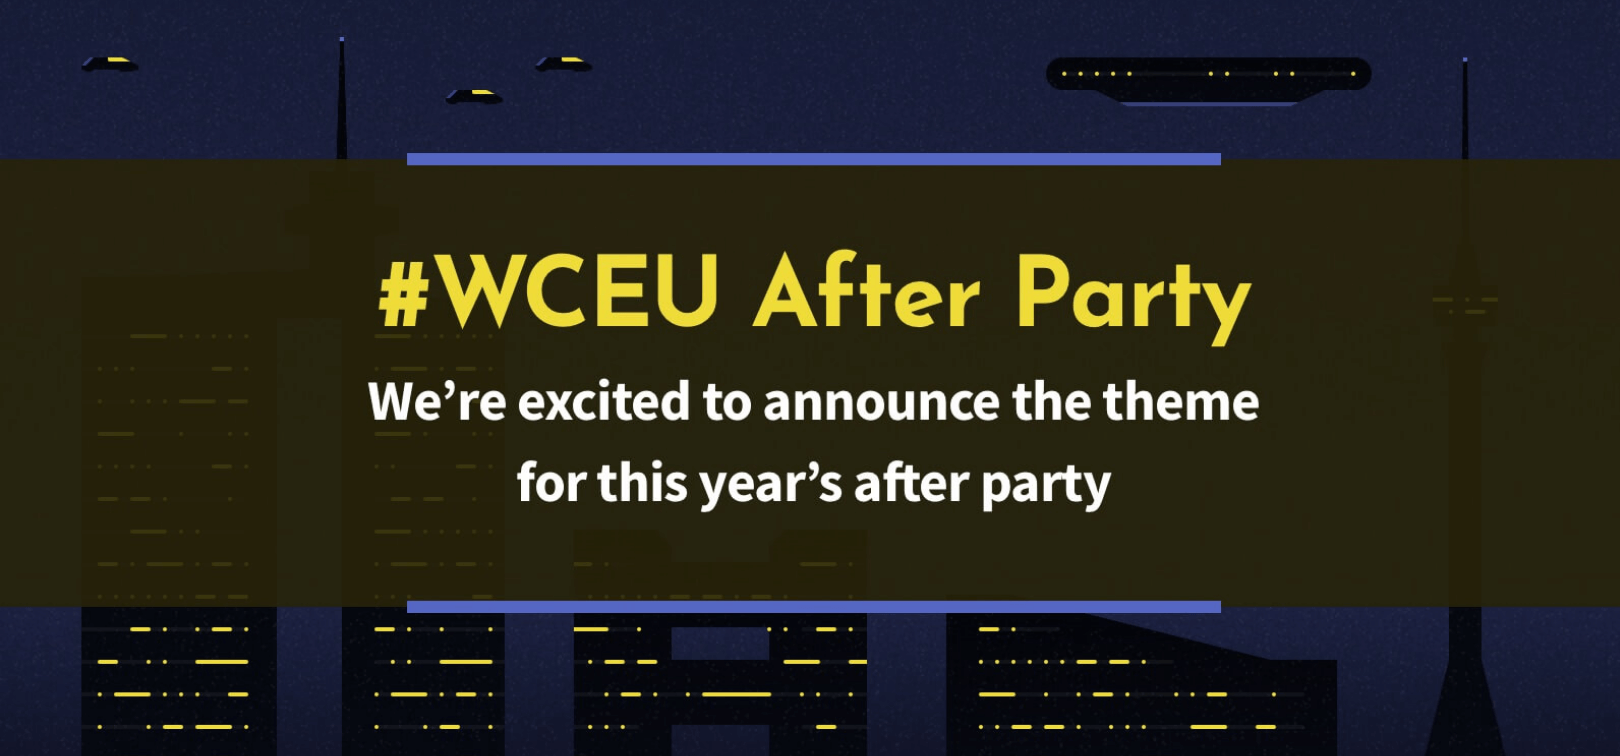 WordCamp Europe 2018 After Party Announcement